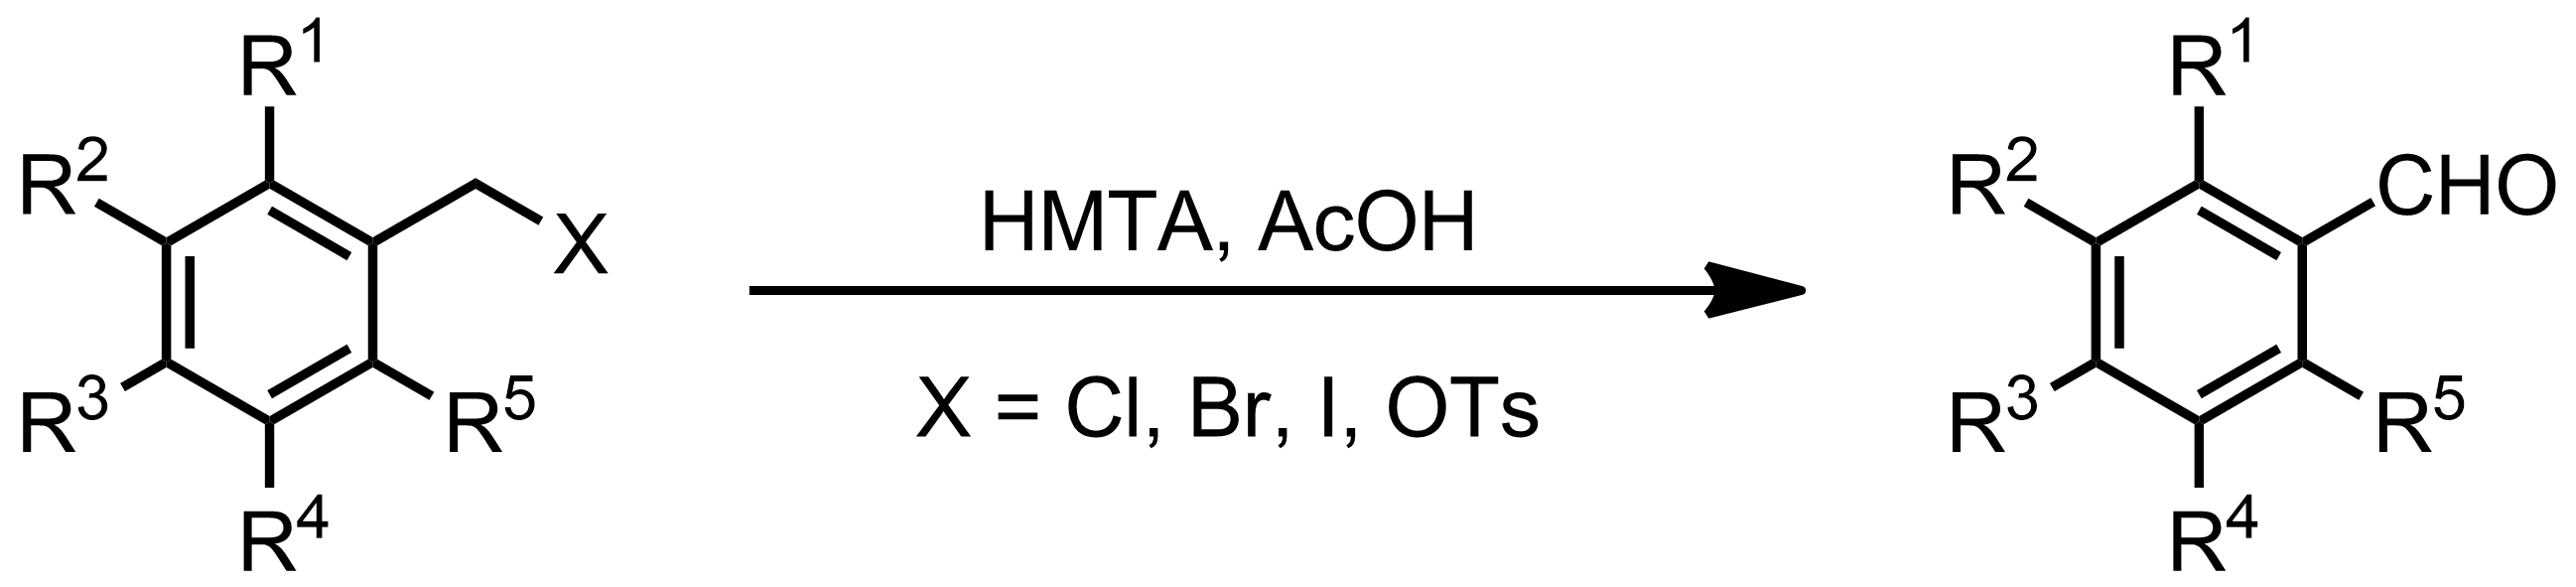 Schematic representation of the Sommelet Reaction.